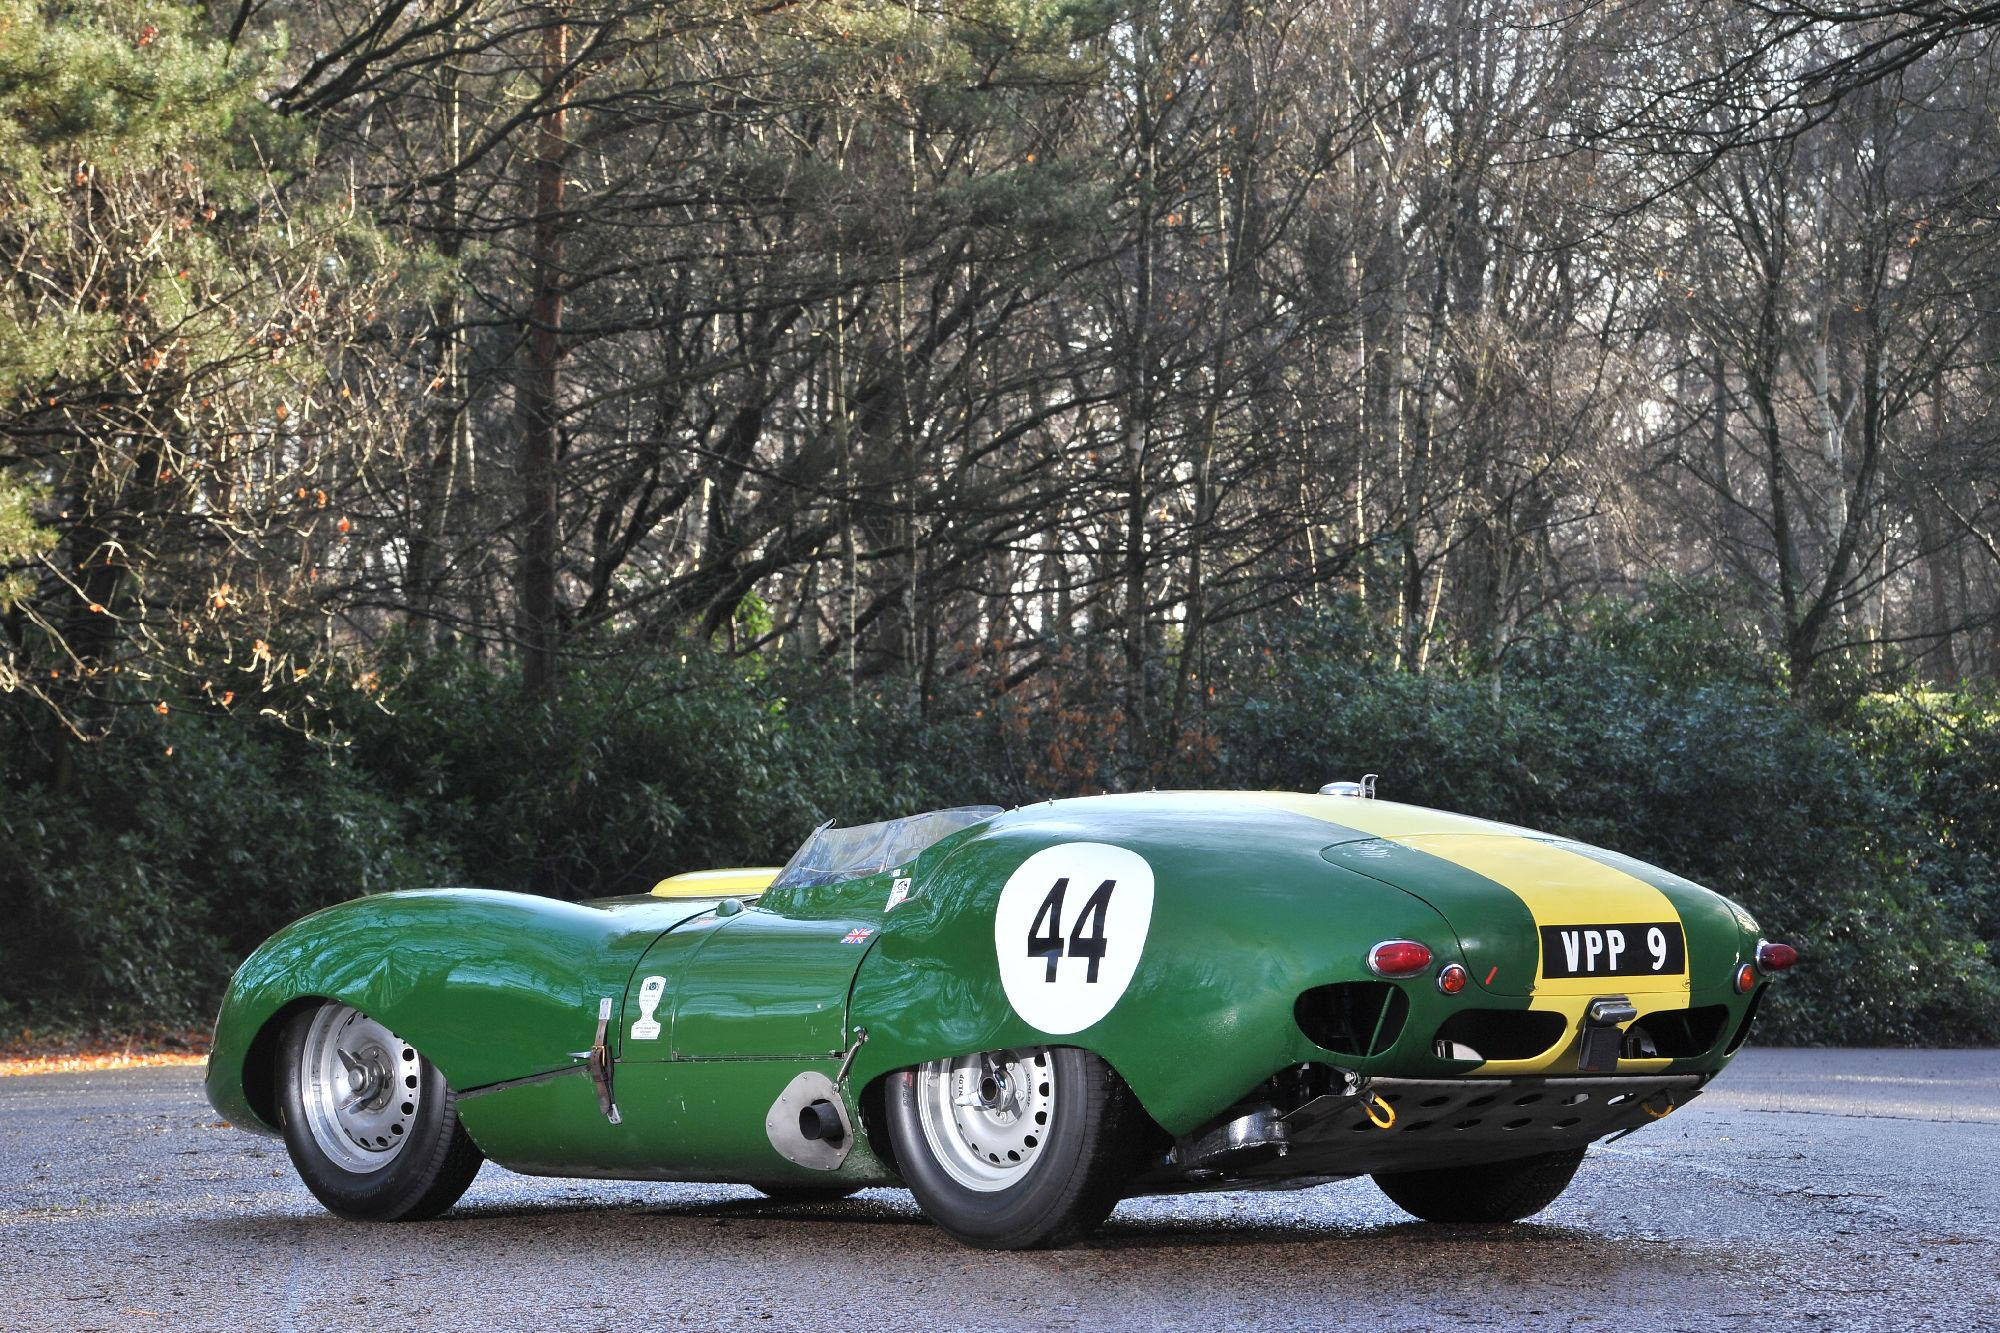 Lister jaguar photo - 5